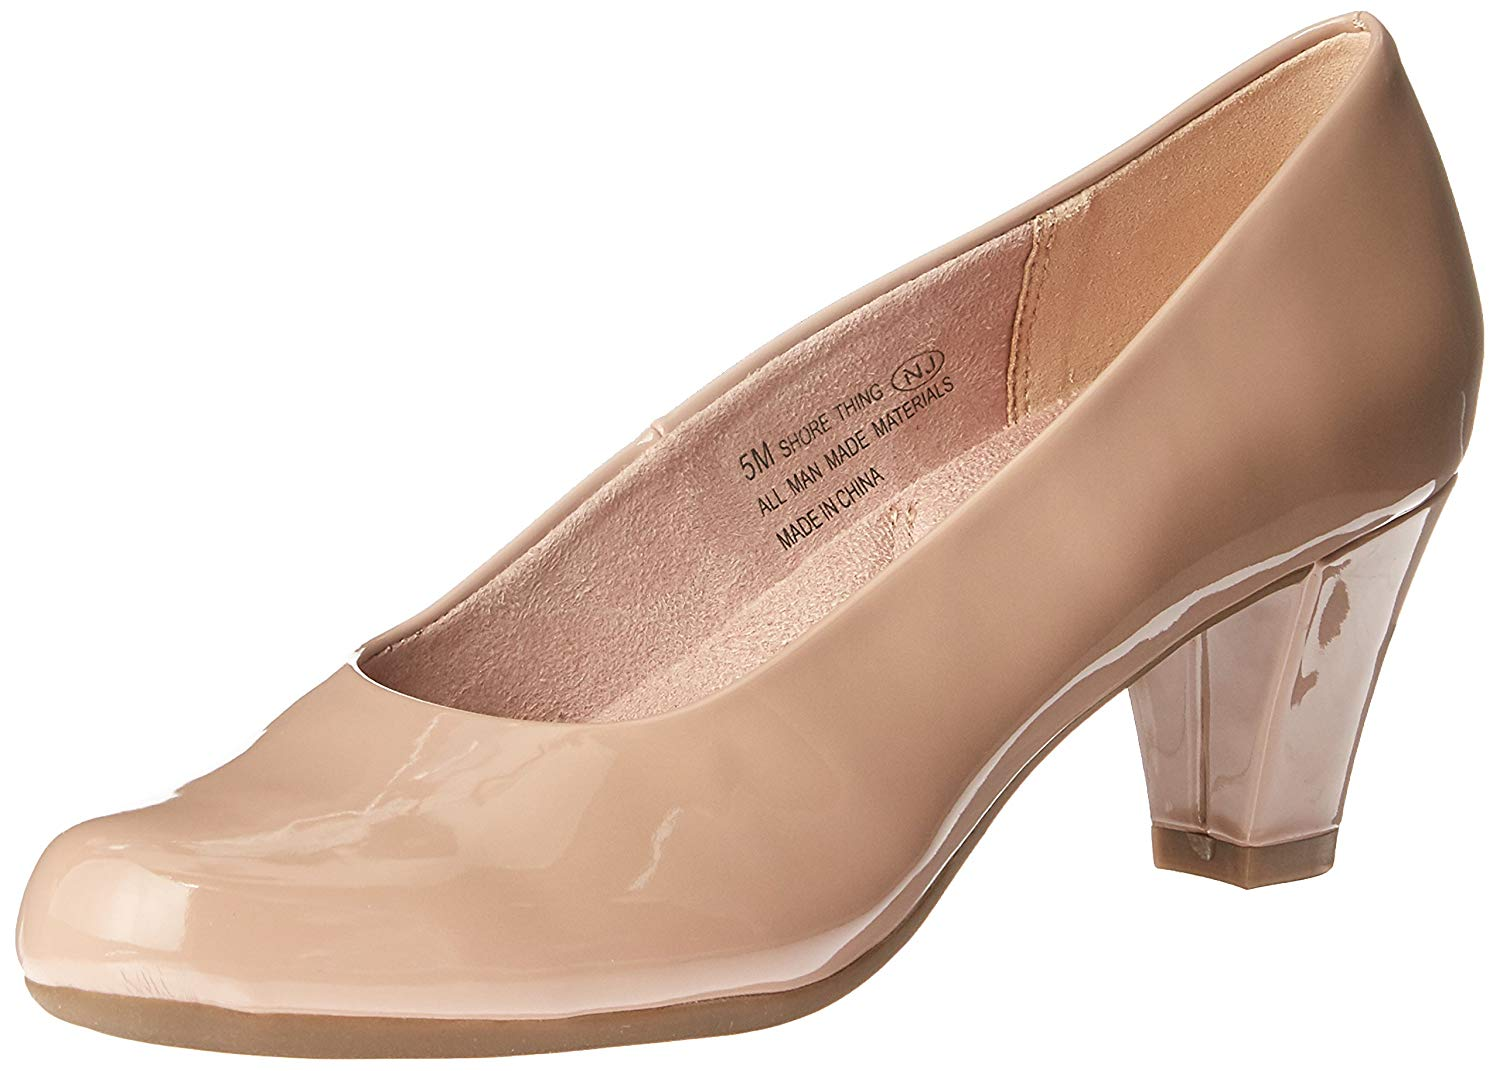 Details about Aerosoles Womens Shore Thing Closed Toe Classic Pumps, Nude Patent, Size 6.5 t8y